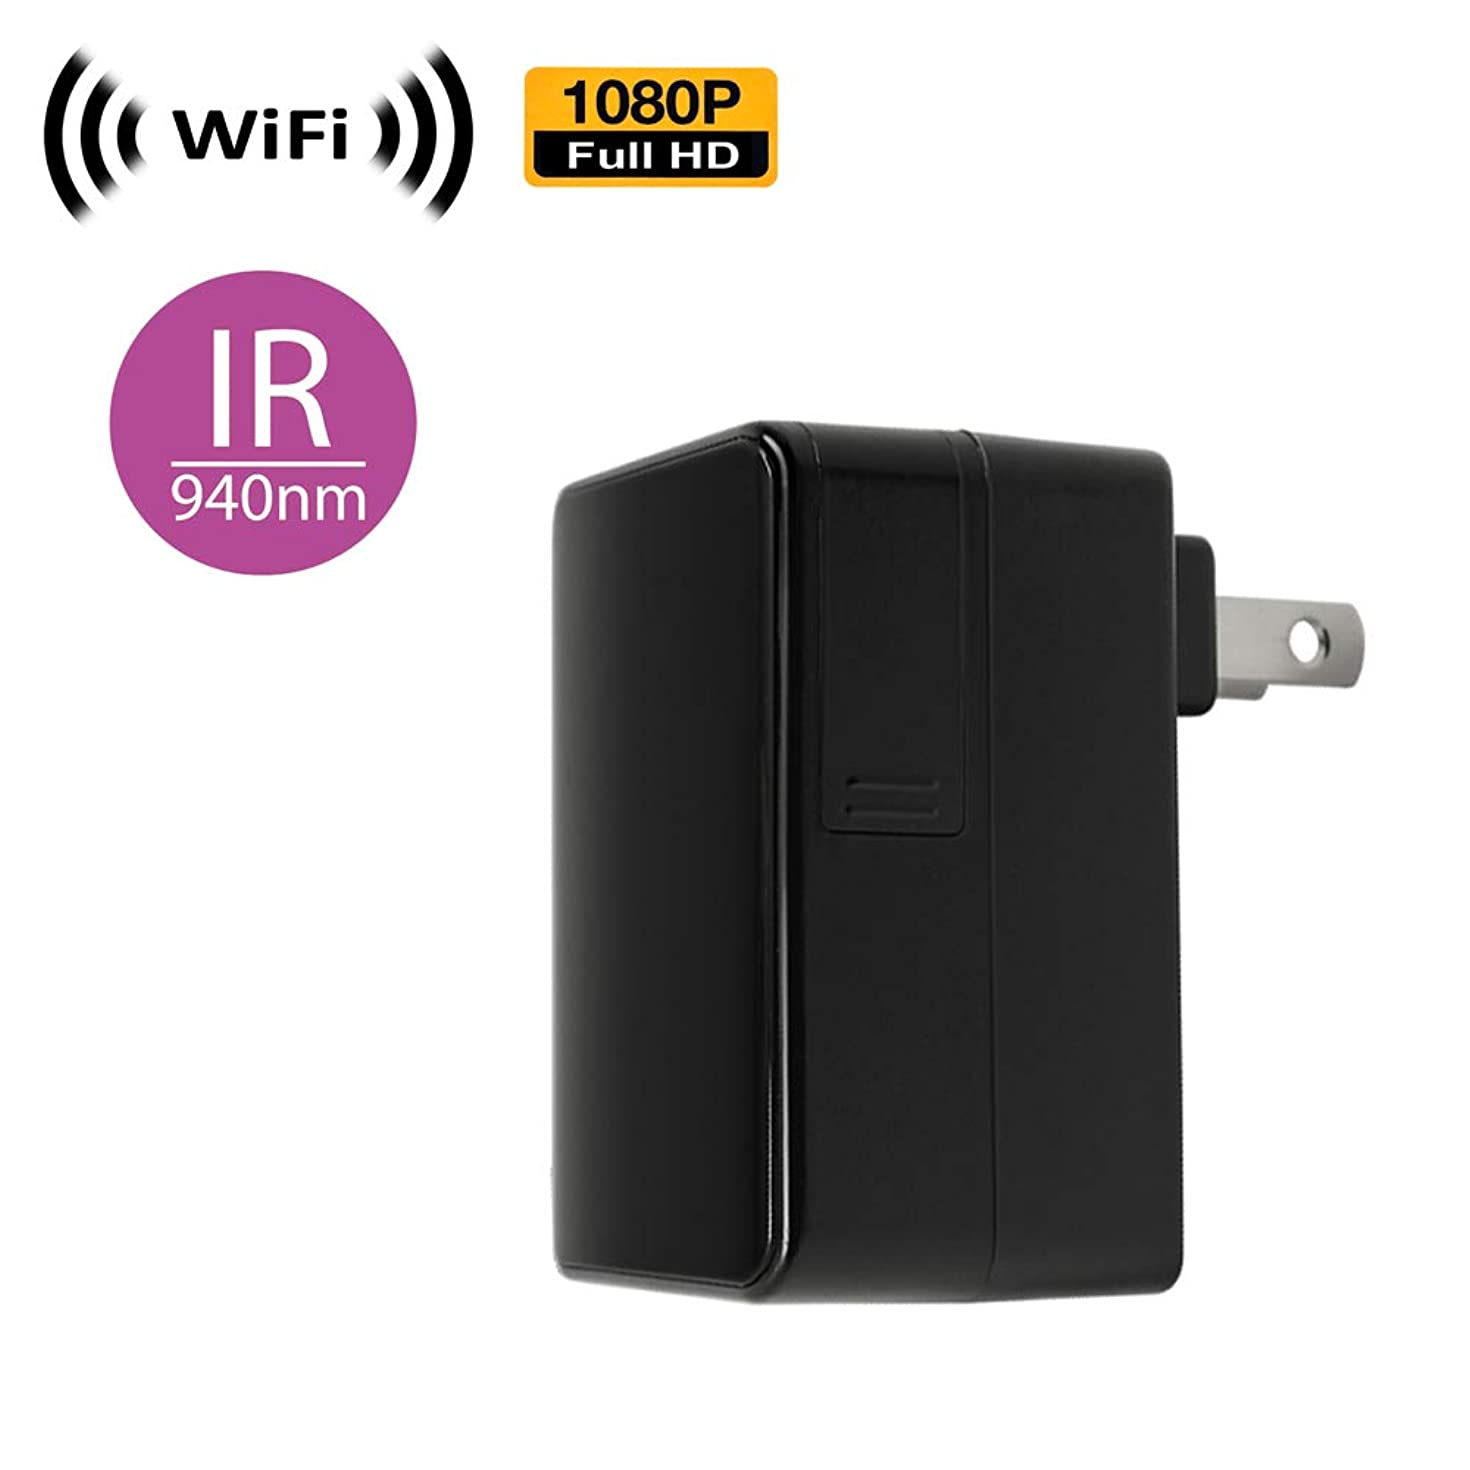 WiFi Spy Camera with Recording & Remote Internet Access; Black Box Style with Pinhole Lens (Flushed)